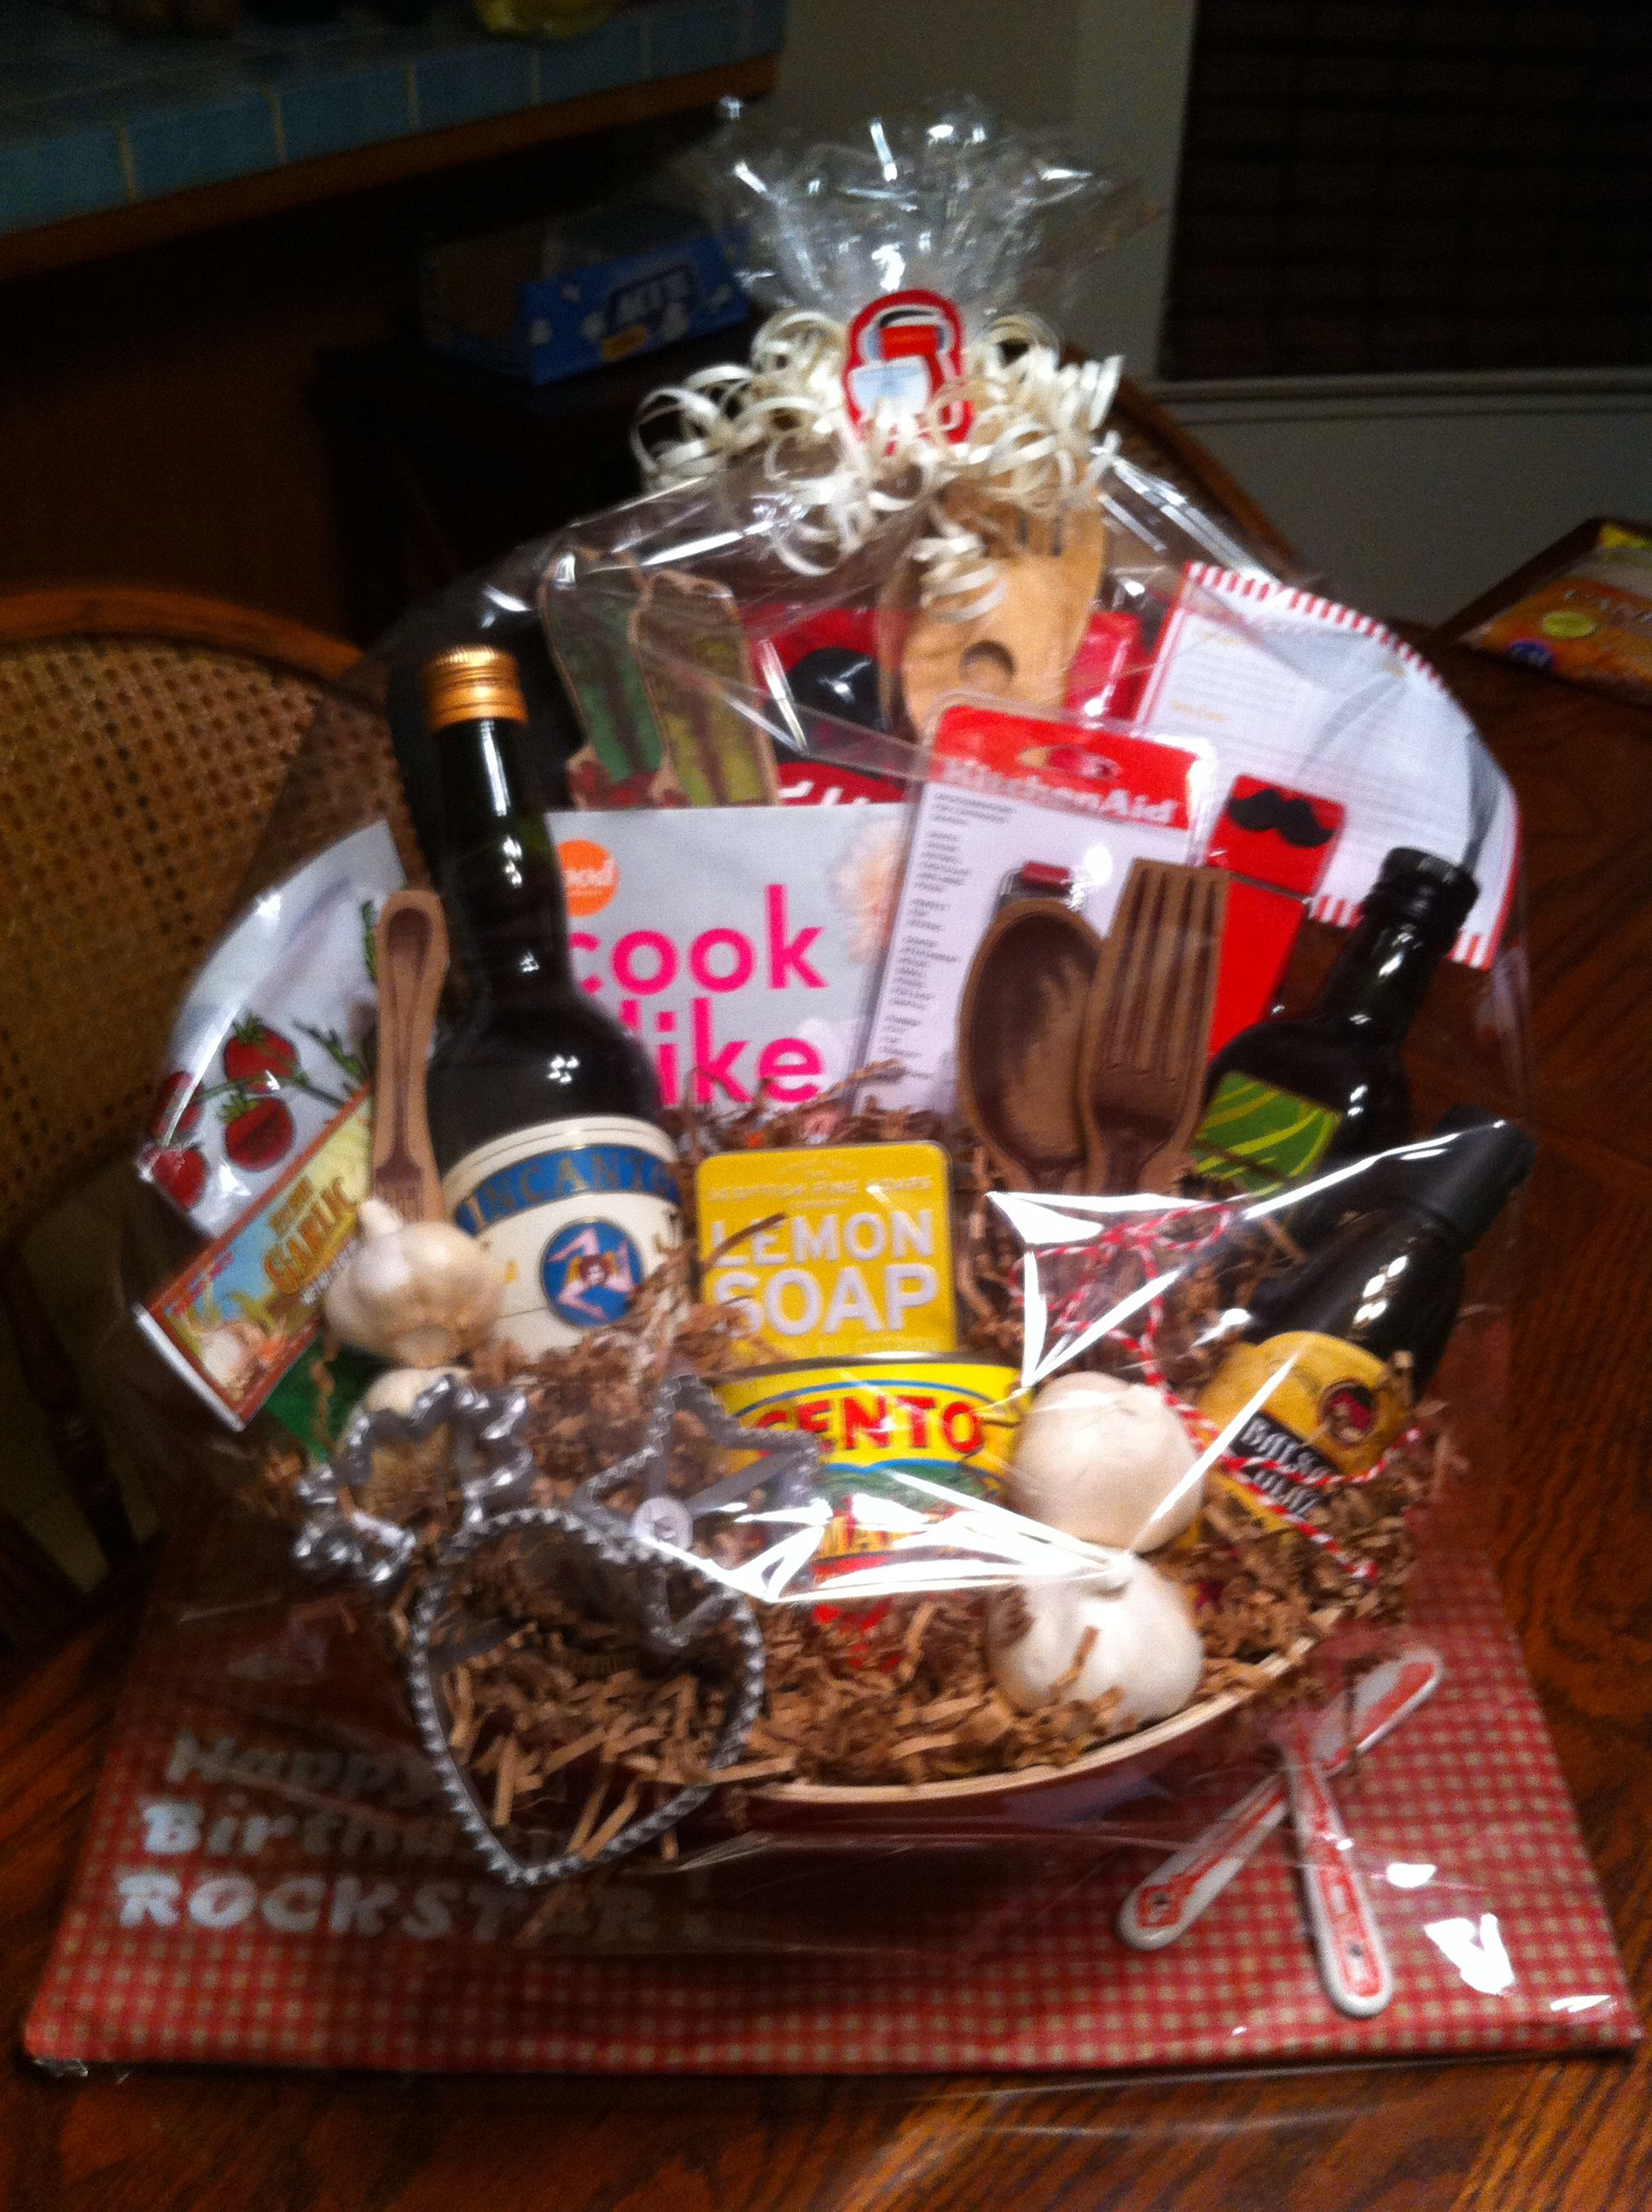 Cook like a rockstar italian cooking themed basket with